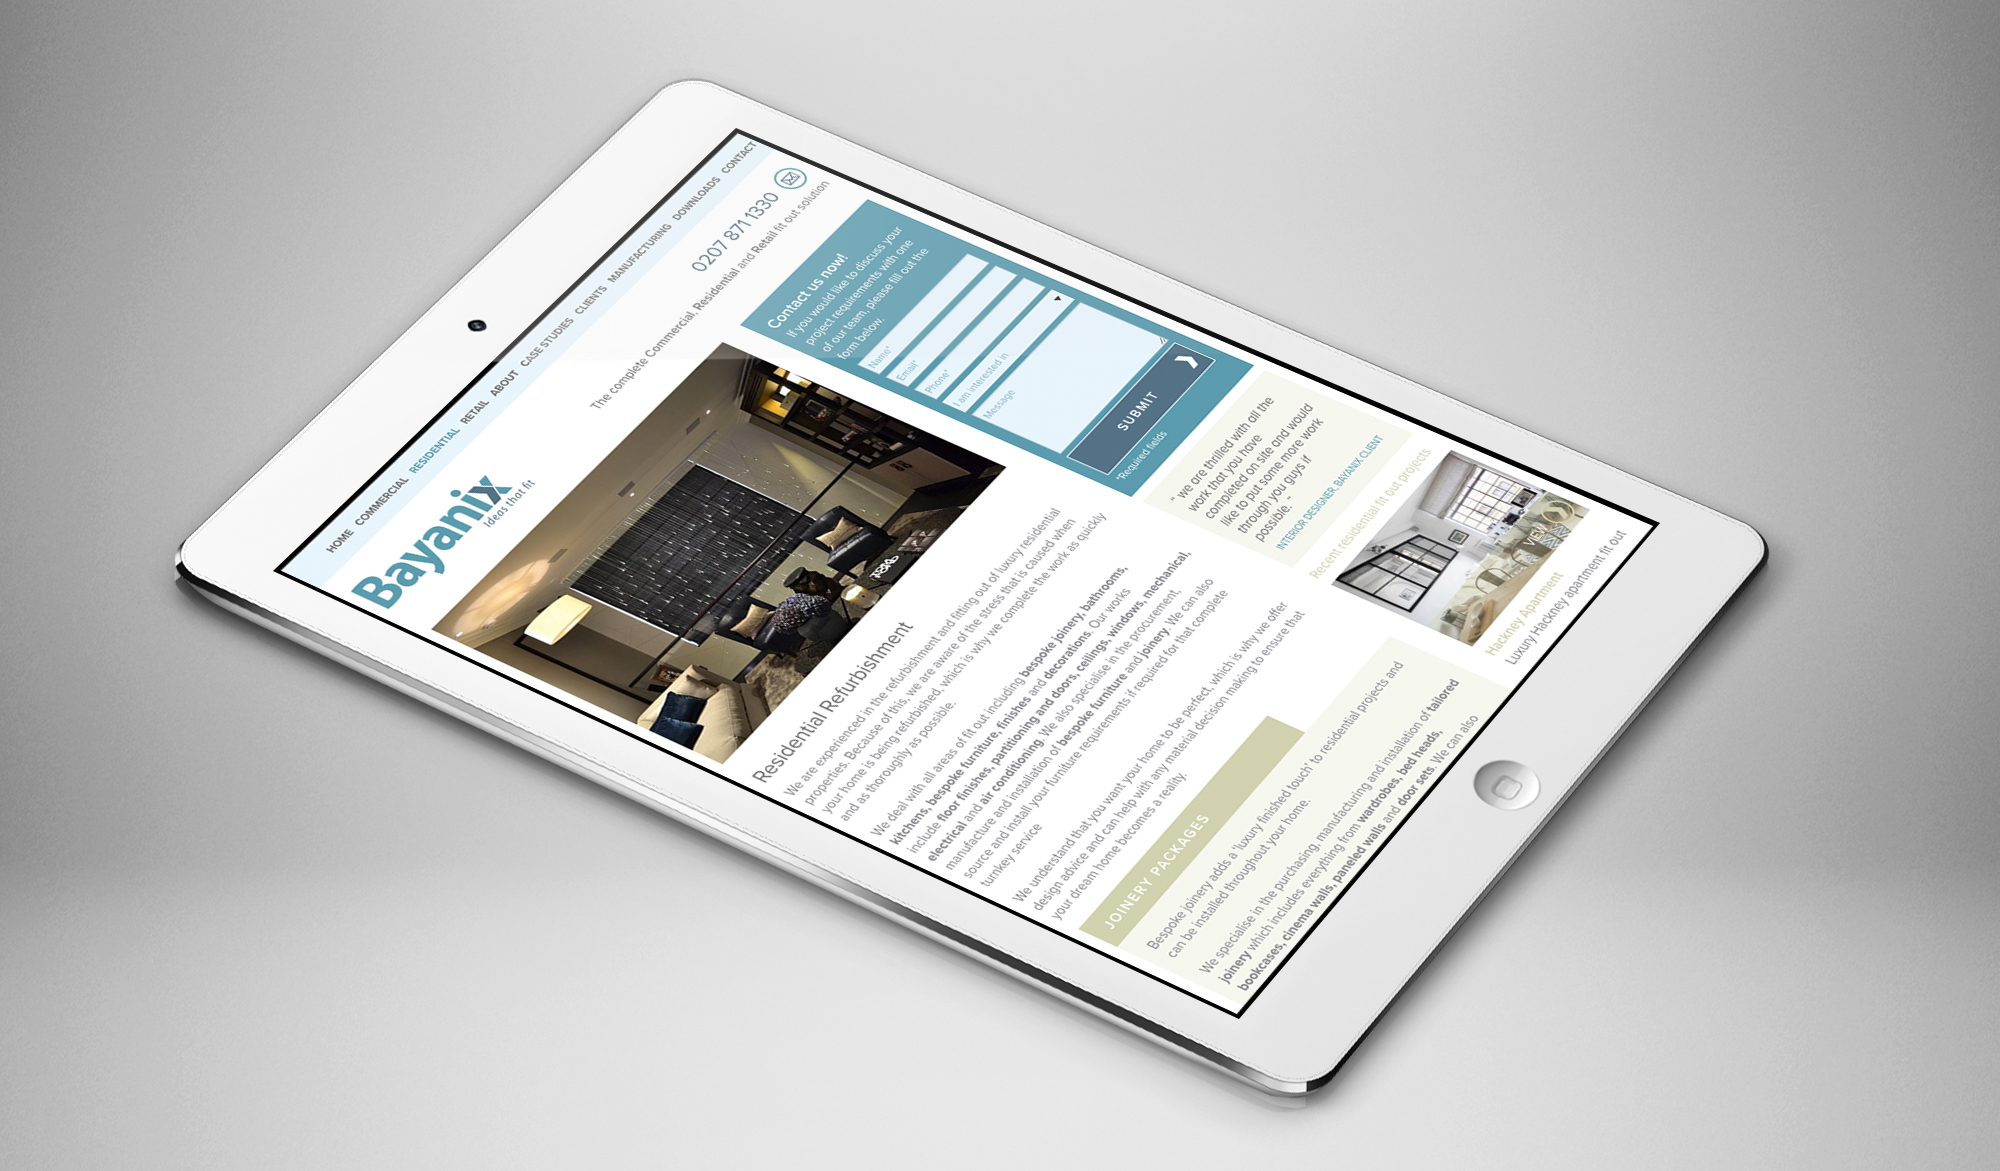 Bayanix website - tablet